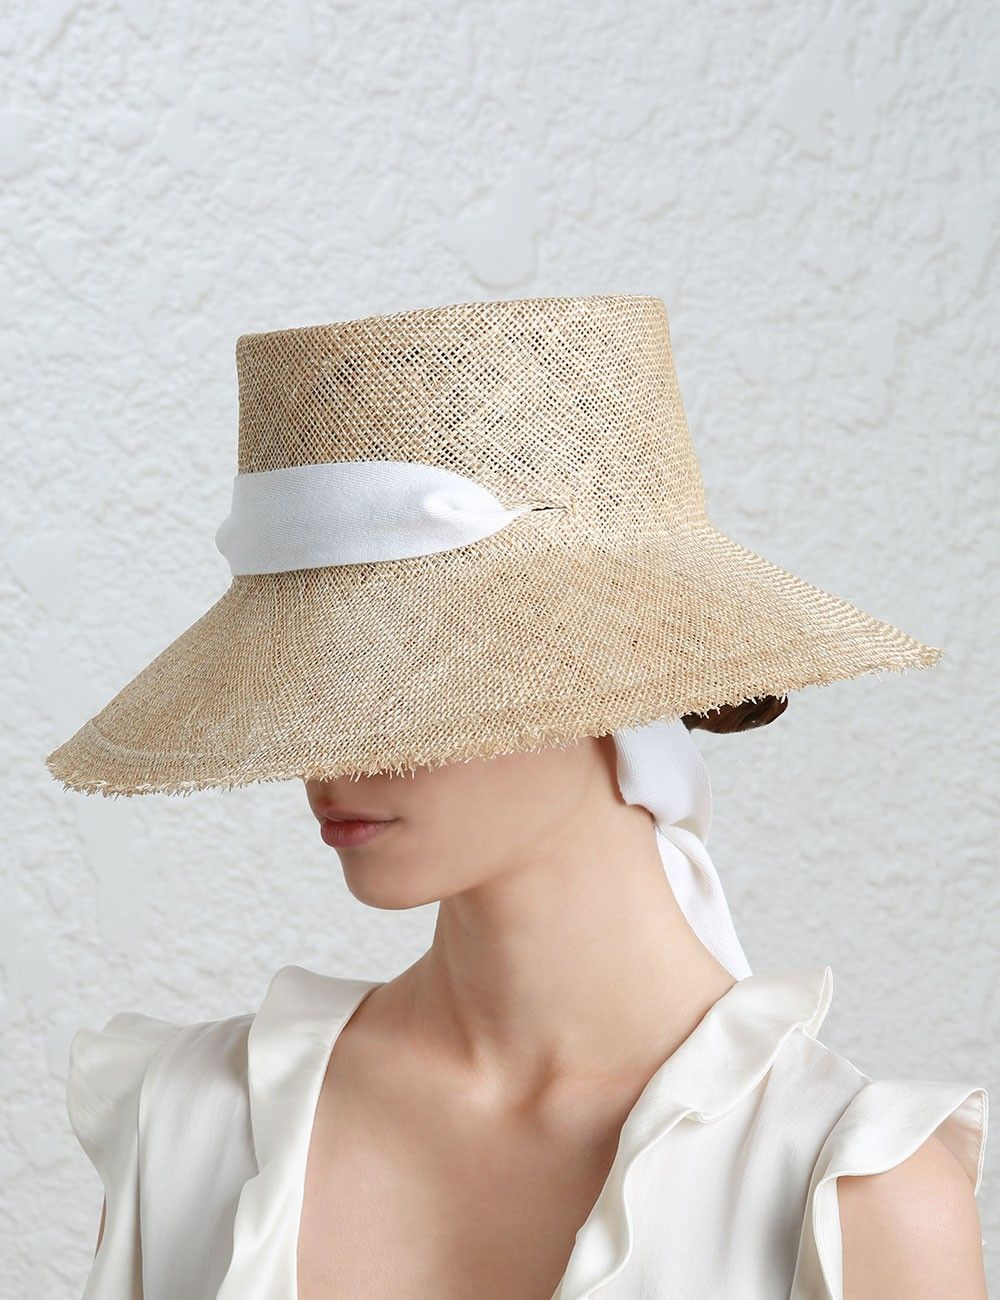 Frayed Edge Straw Brim Hat From Our Resort Rtw 17 Collection In Natural By The Hatmaker In Collaboration With Zimmermann Straw Hat Hats Brim Hat Crown Hat